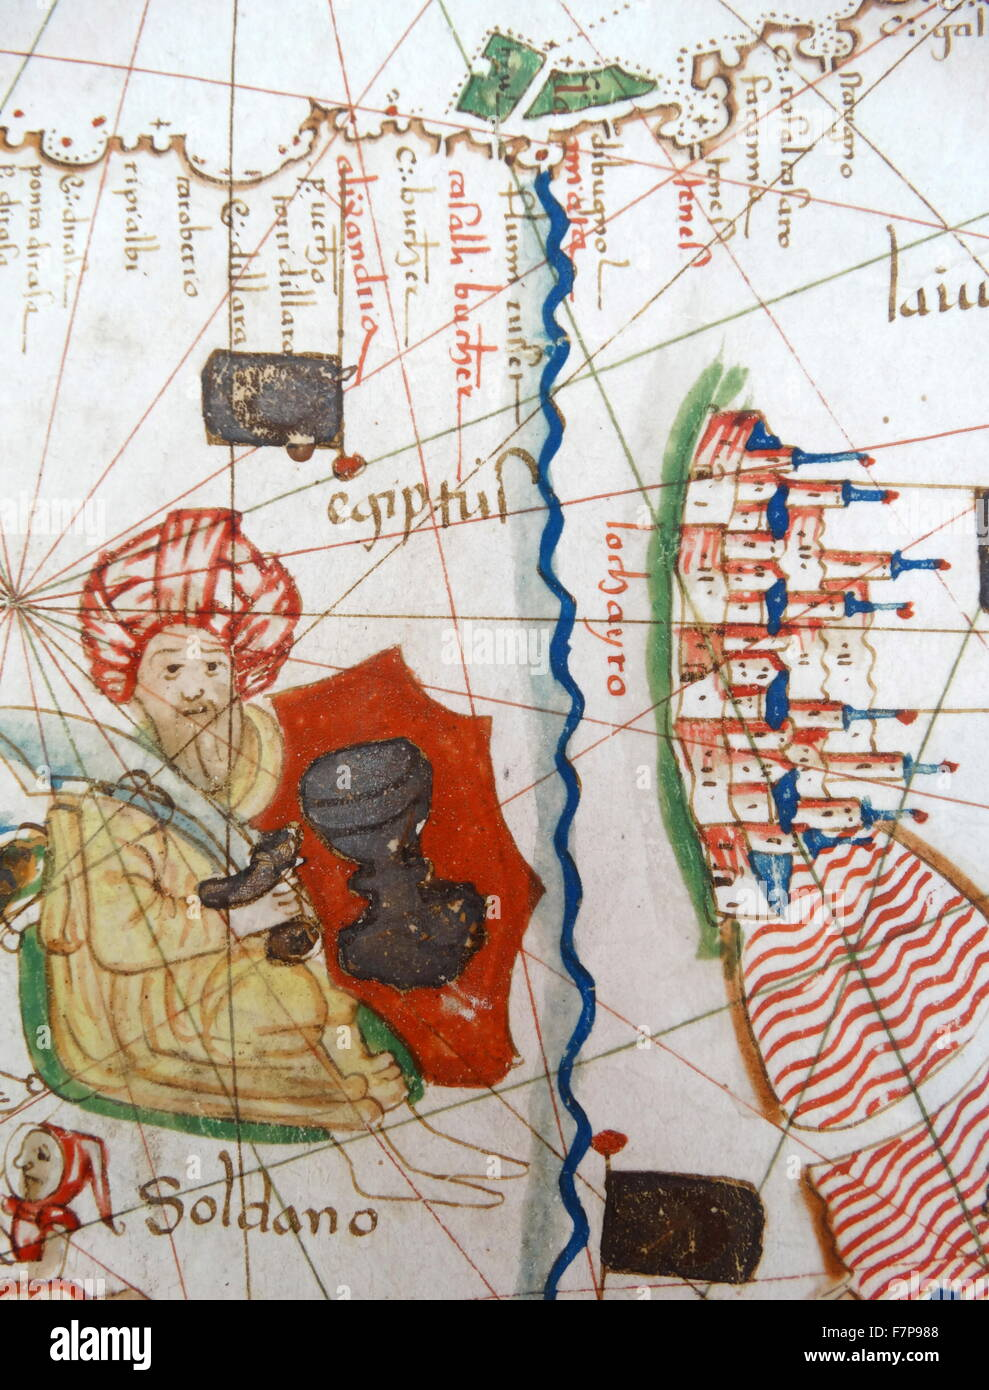 Renaissance map of Europe Jacopo Russo 1528 detail showing the